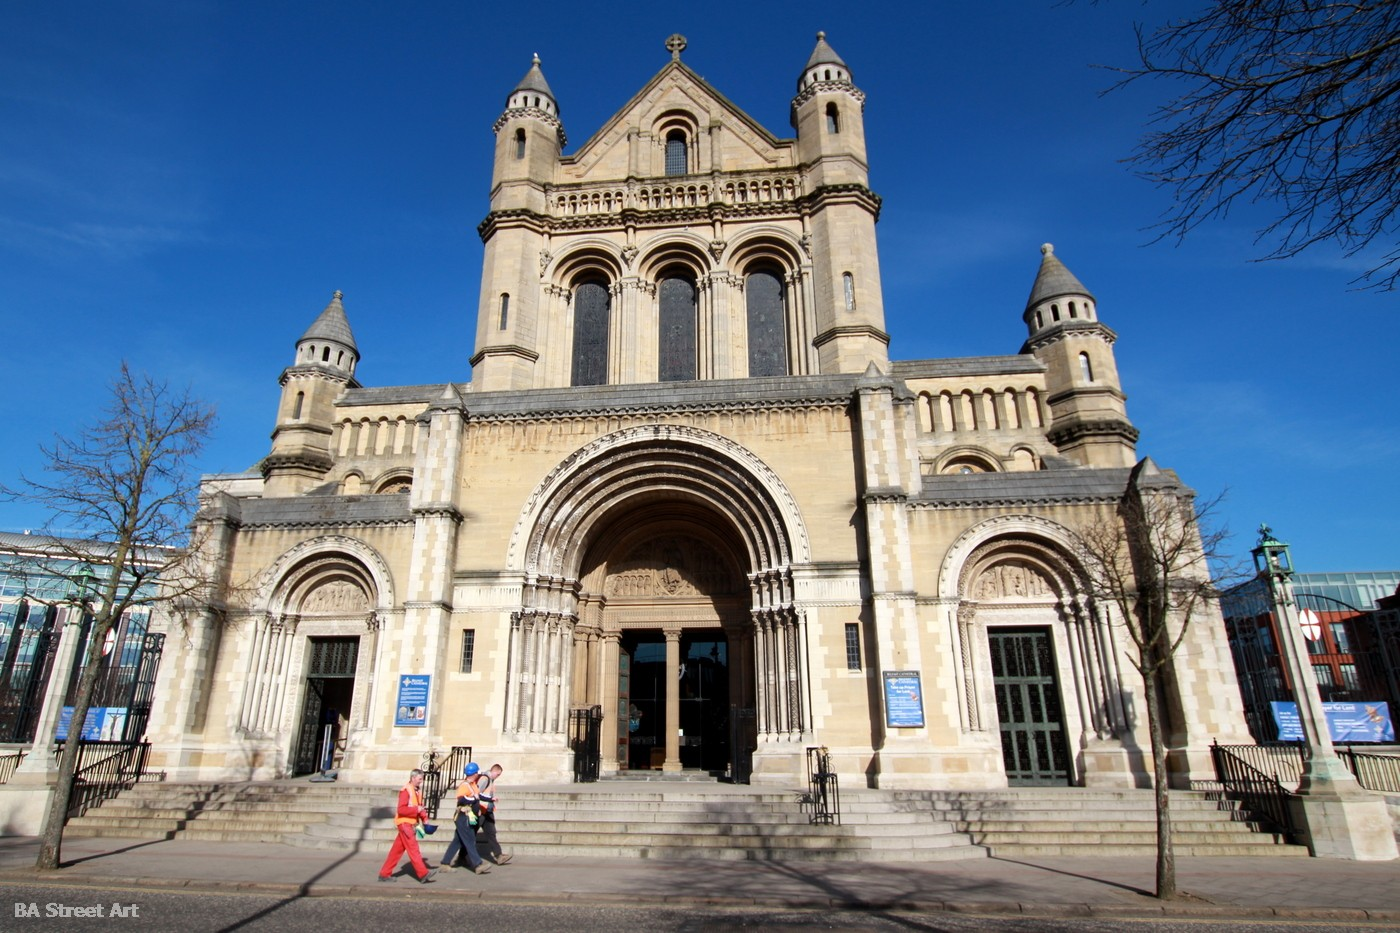 belfast cathedral st anne's cathedral quarter donegall street northern ireland street art facade main entrance